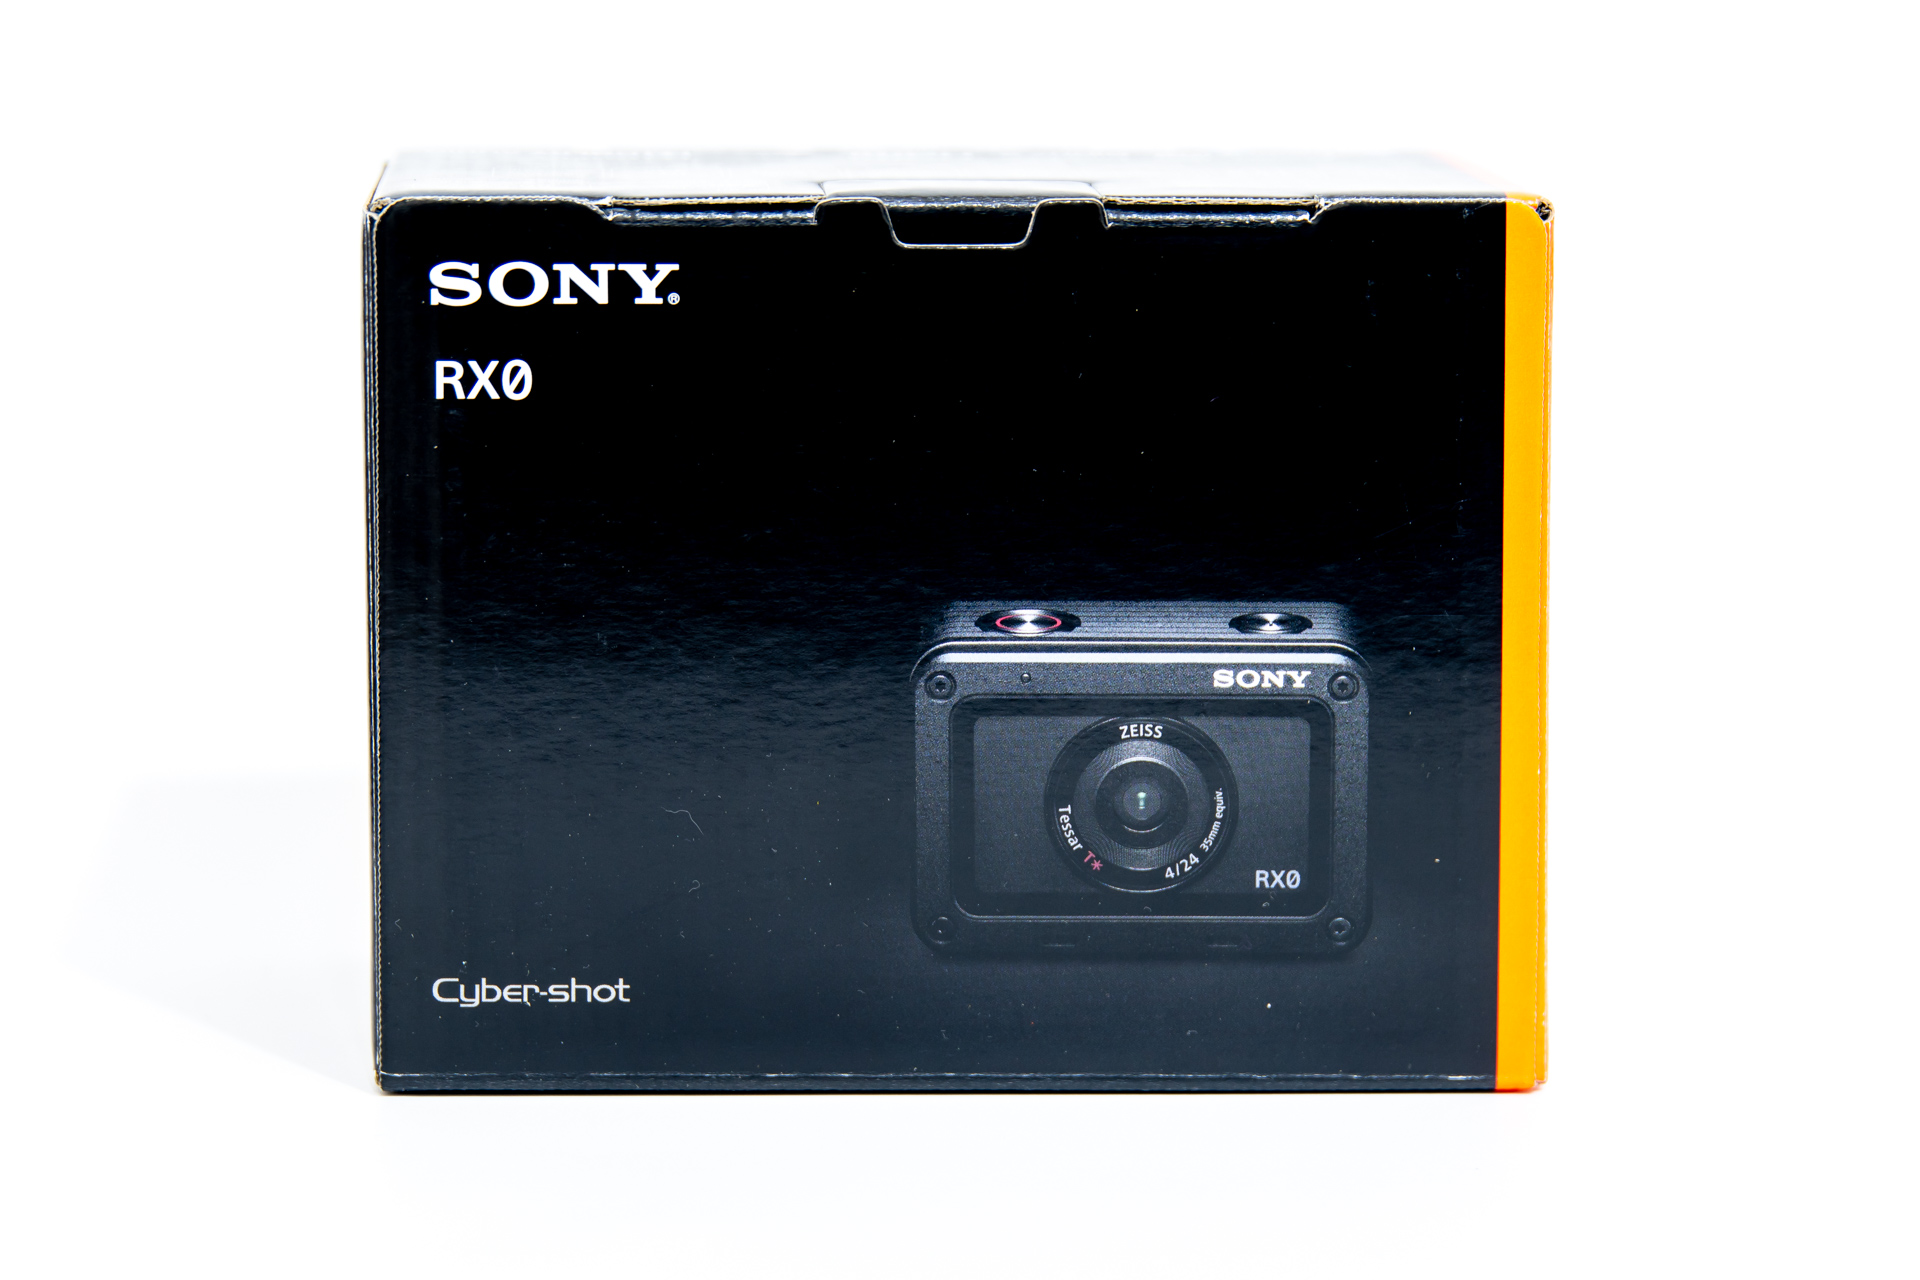 SONY RX0 レビュー 箱